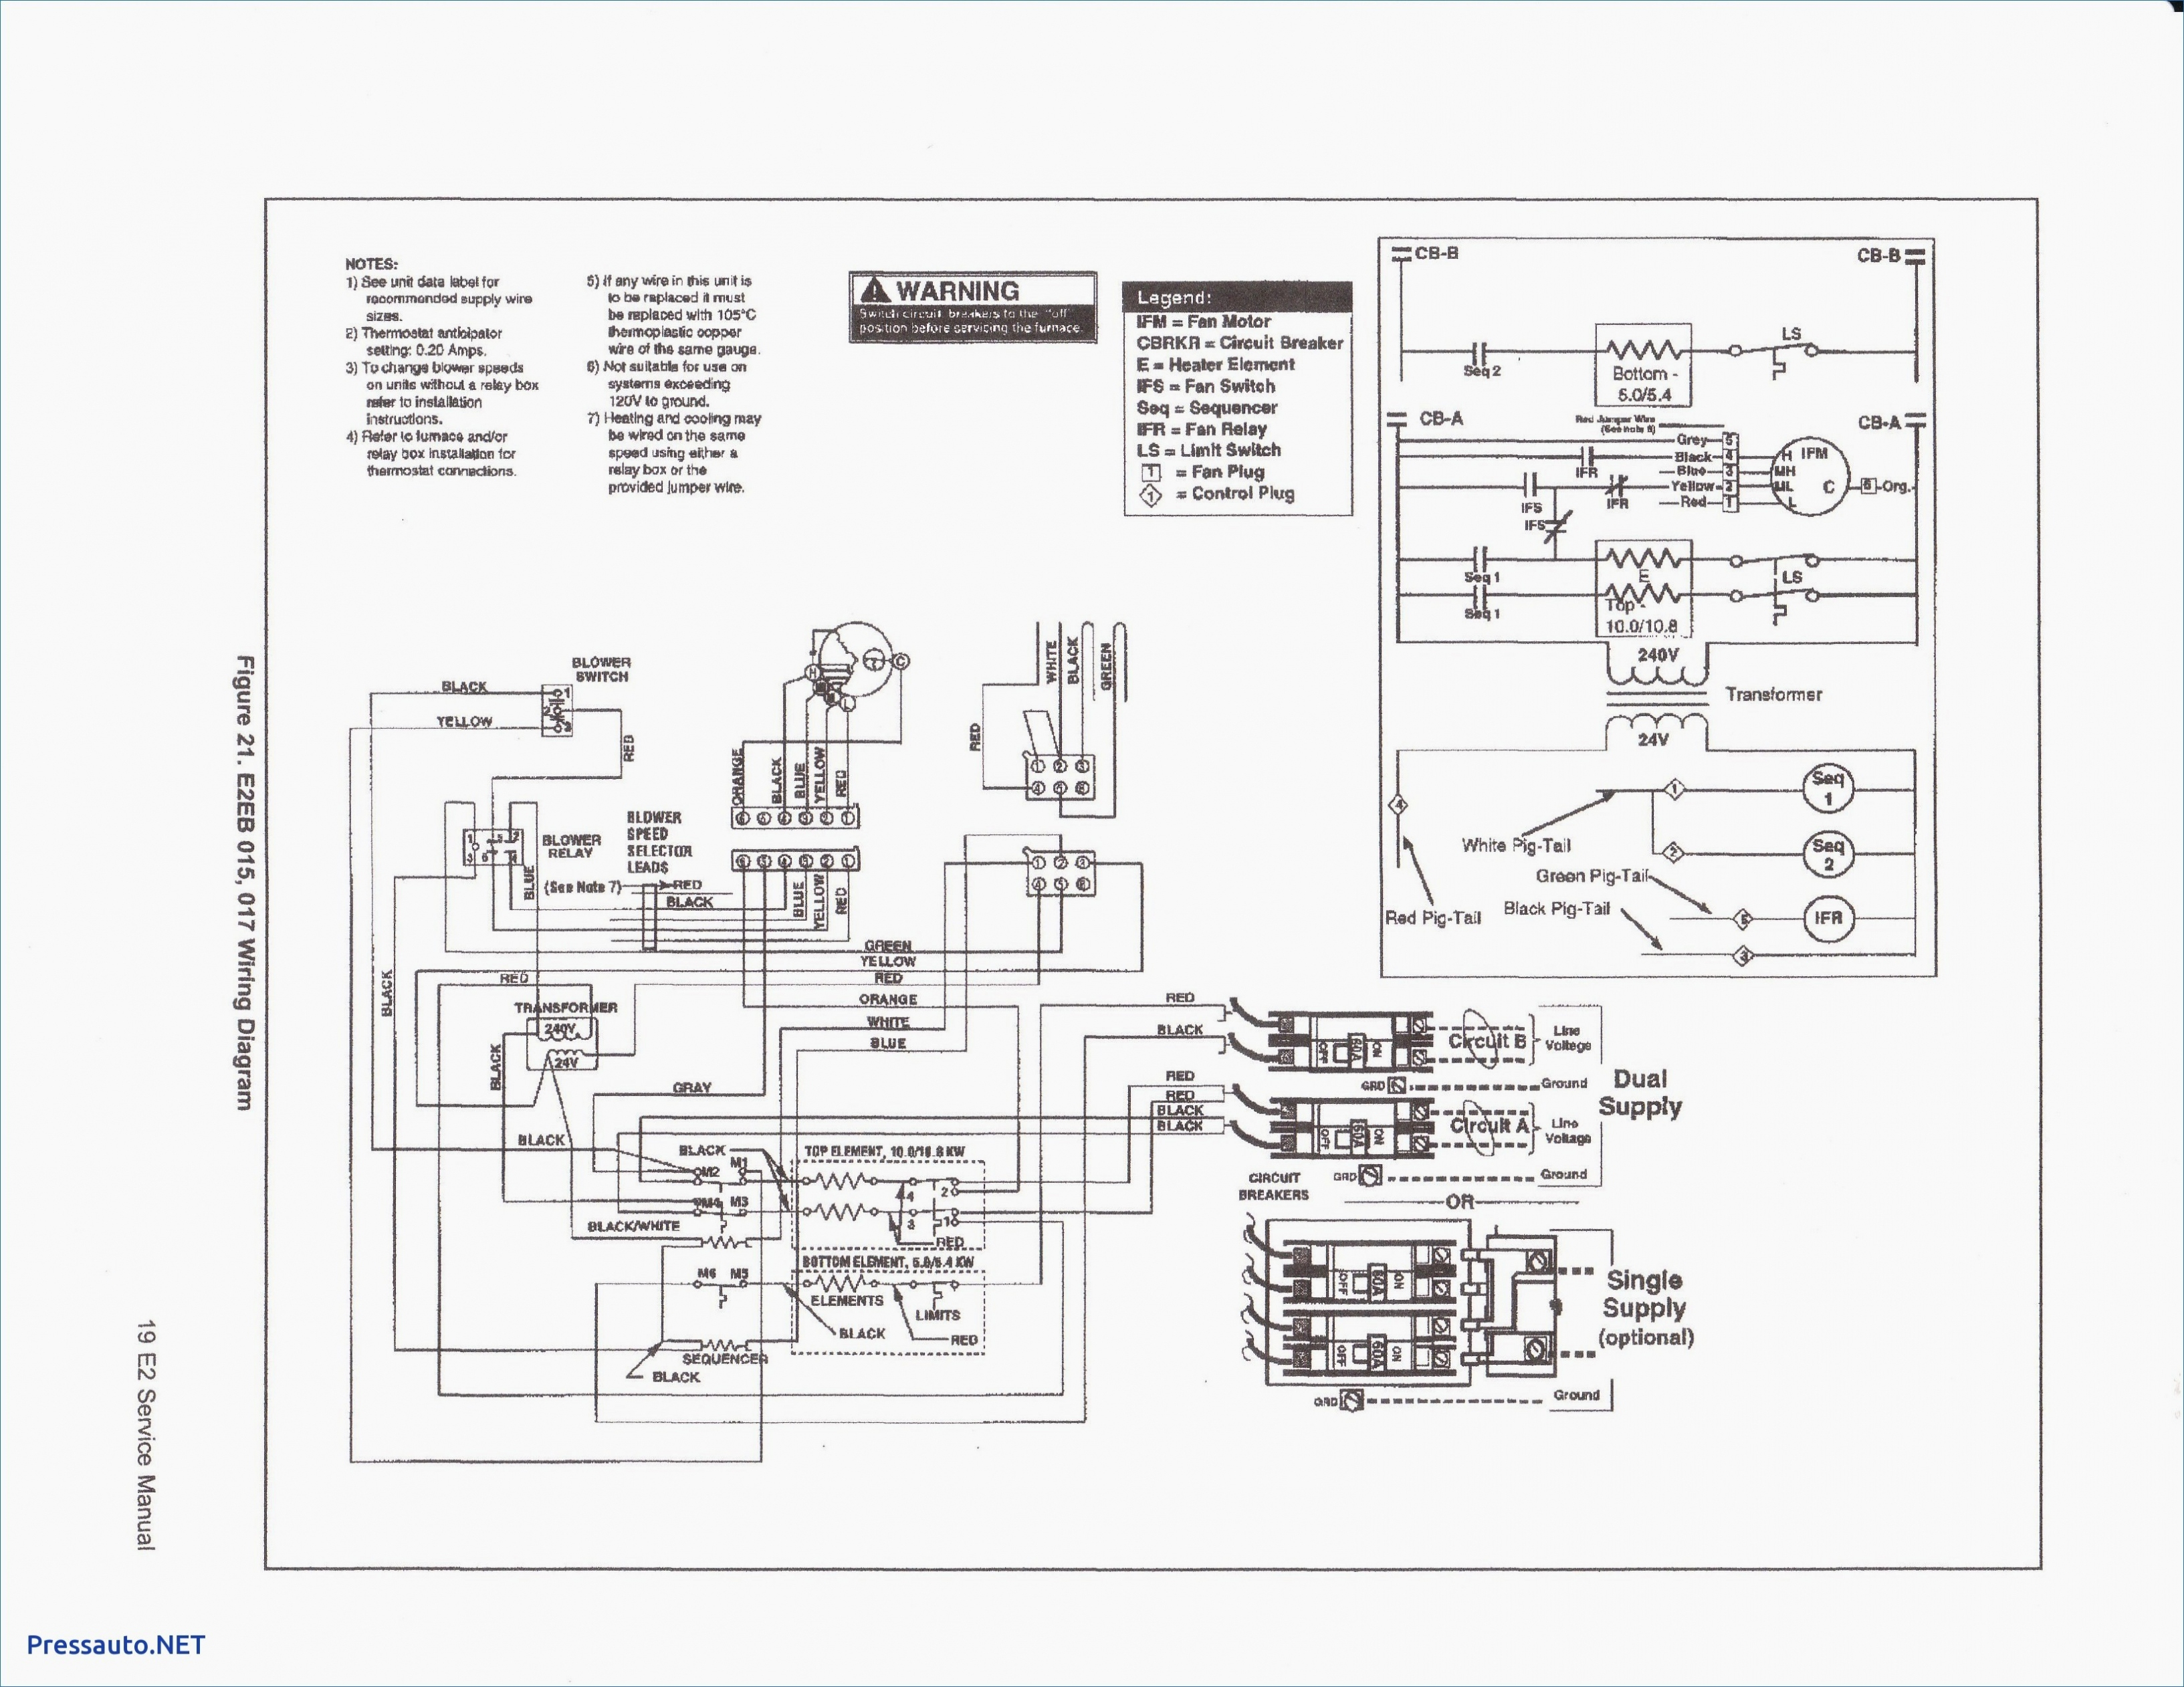 Goodman Furnace Thermostat Wiring Diagram 100 4 - Wiring Diagrams Hubs - Goodman Furnace Wiring Diagram